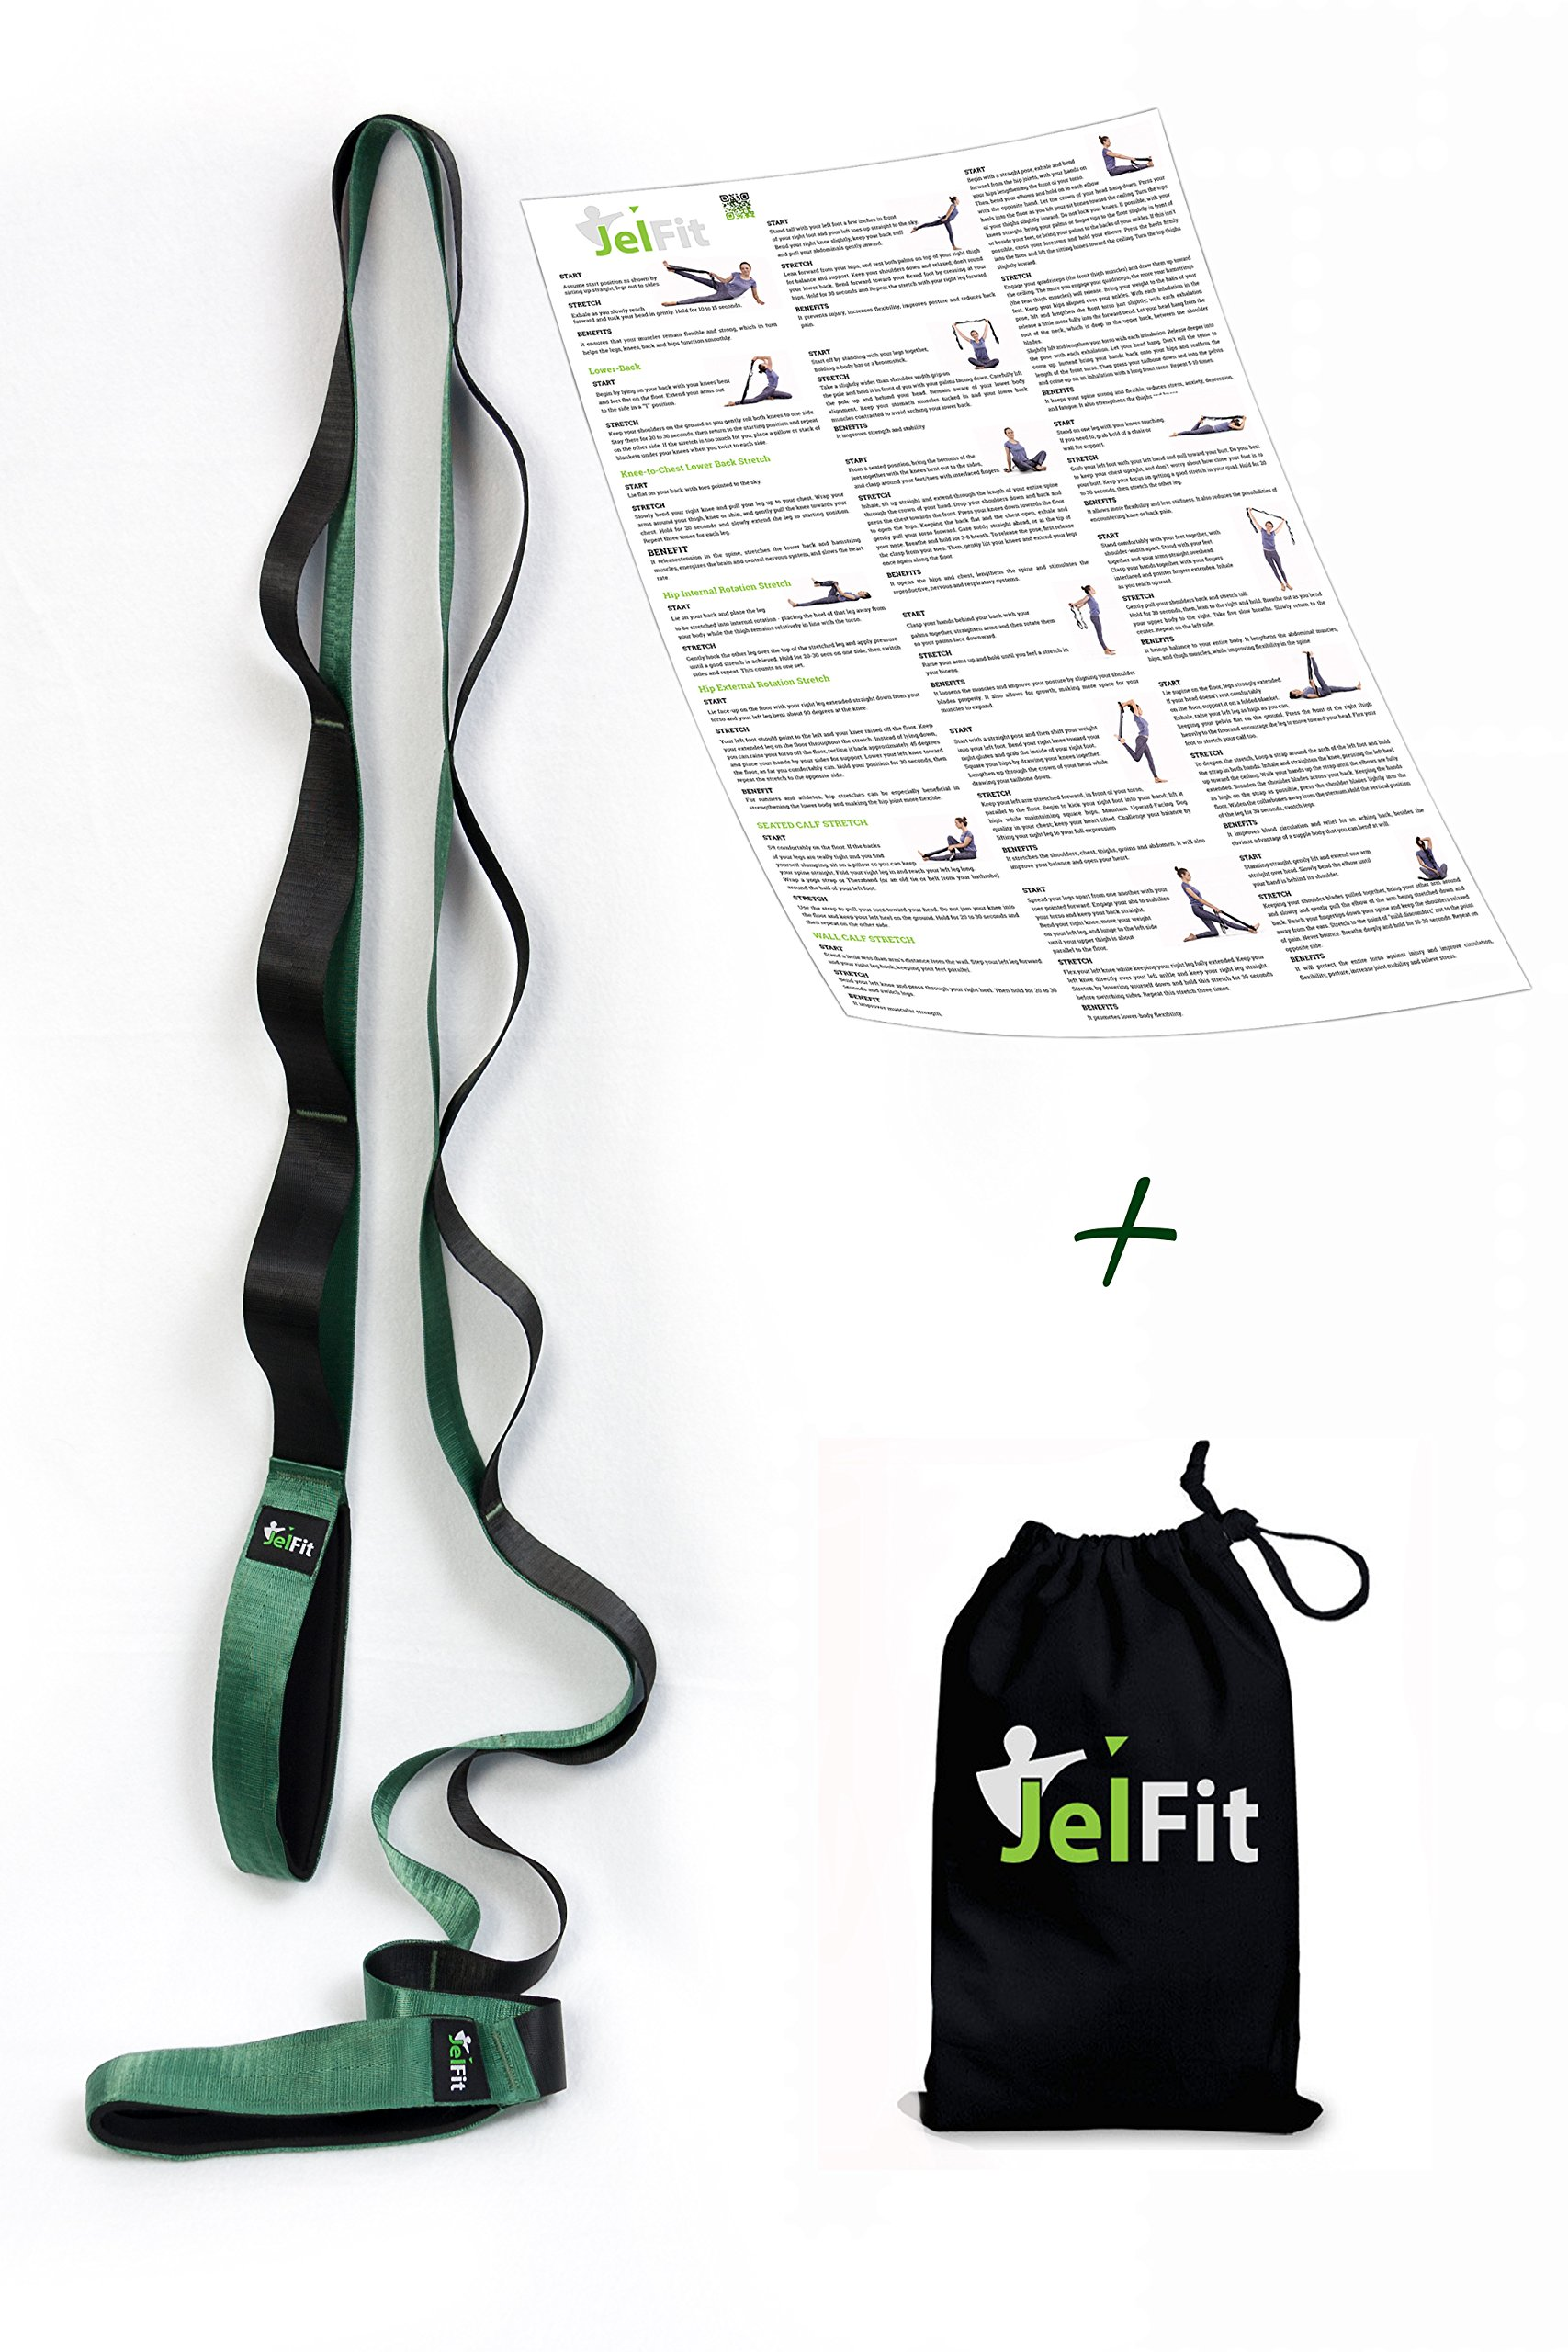 JelFit Stretching Strap with Multiple Handling Loops, Original Stretch Out Strap Exercise Band for Yoga, Physical Therapist & Athletes – Get Flexible, Deepen Your Stretches, Prevent Injuries + ePoster